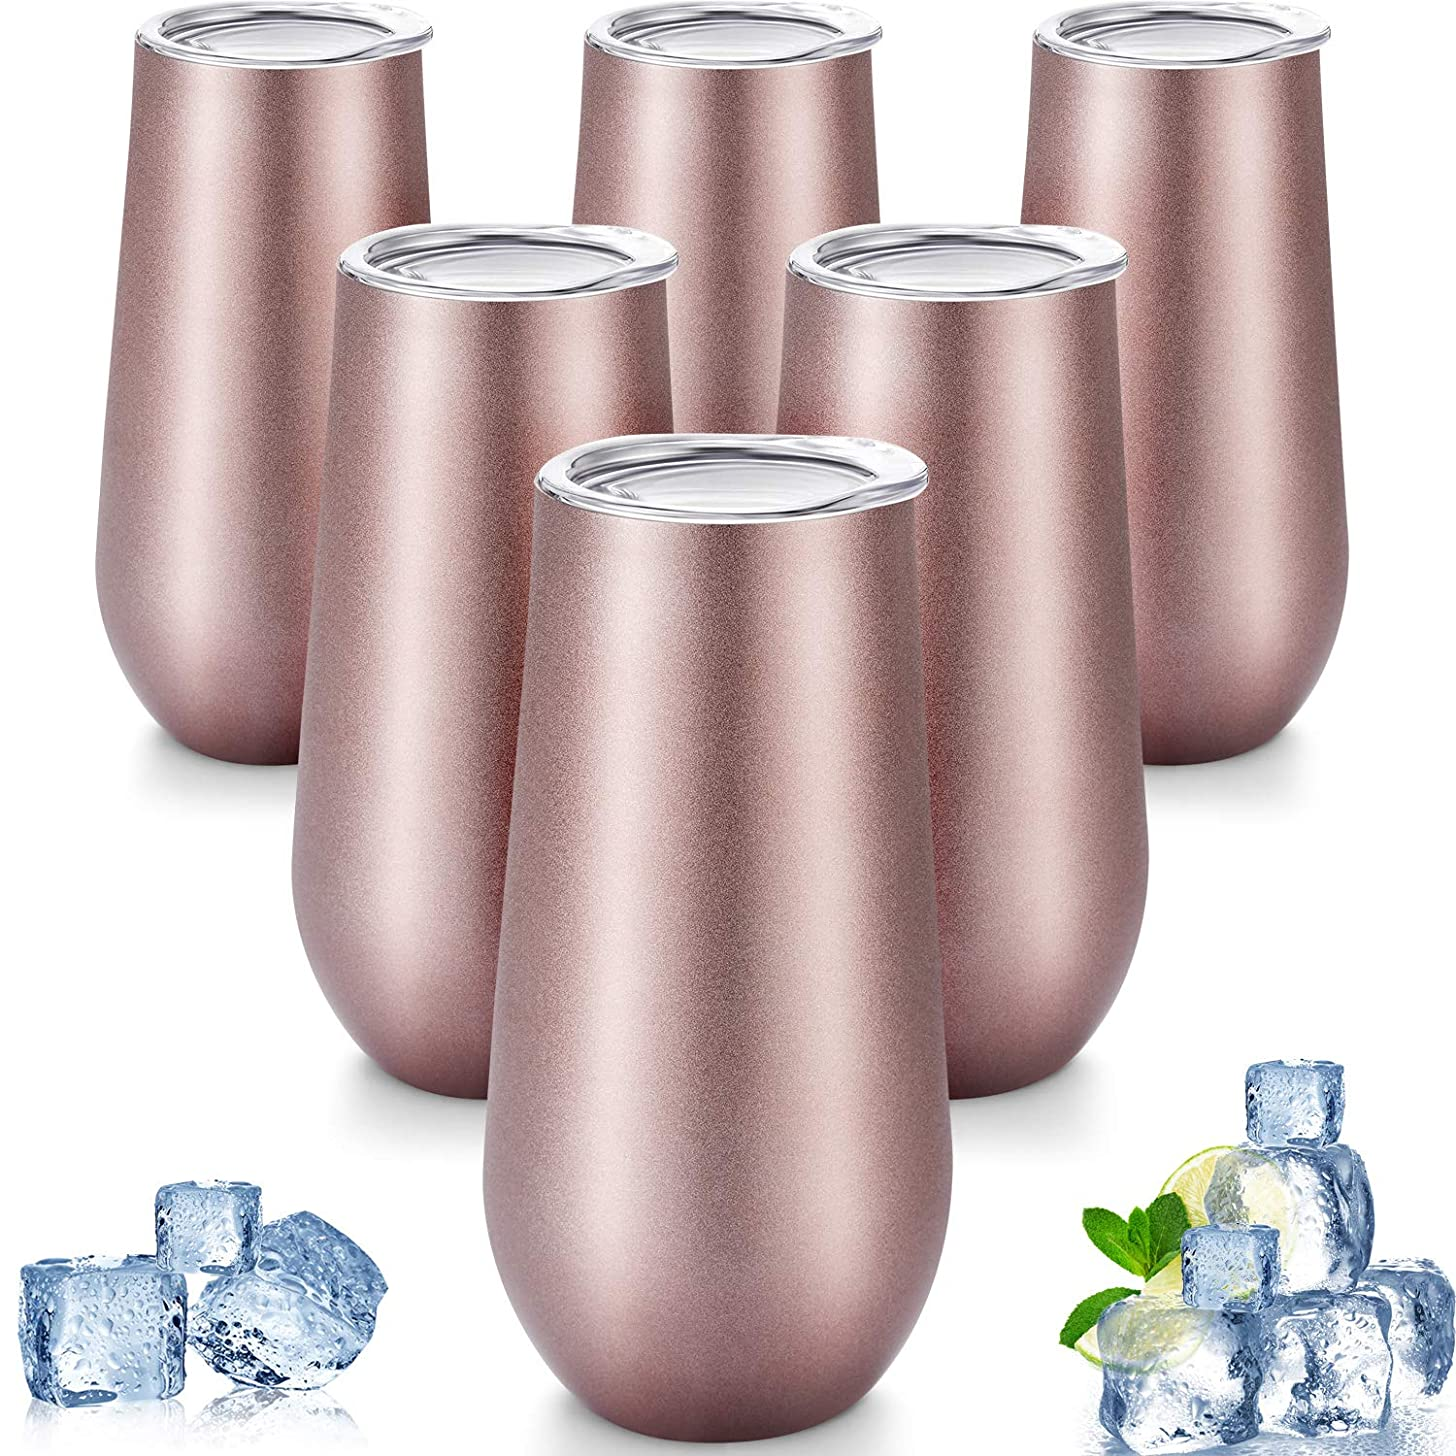 6 Pieces Stemless Champagne Flutes Double-insulated Champagne Tumbler with Lips, 6 OZ Stainless Steel Unbreakable Cocktail Cups for Coffee Wine Glass Tumbler (6 Rose Gold)